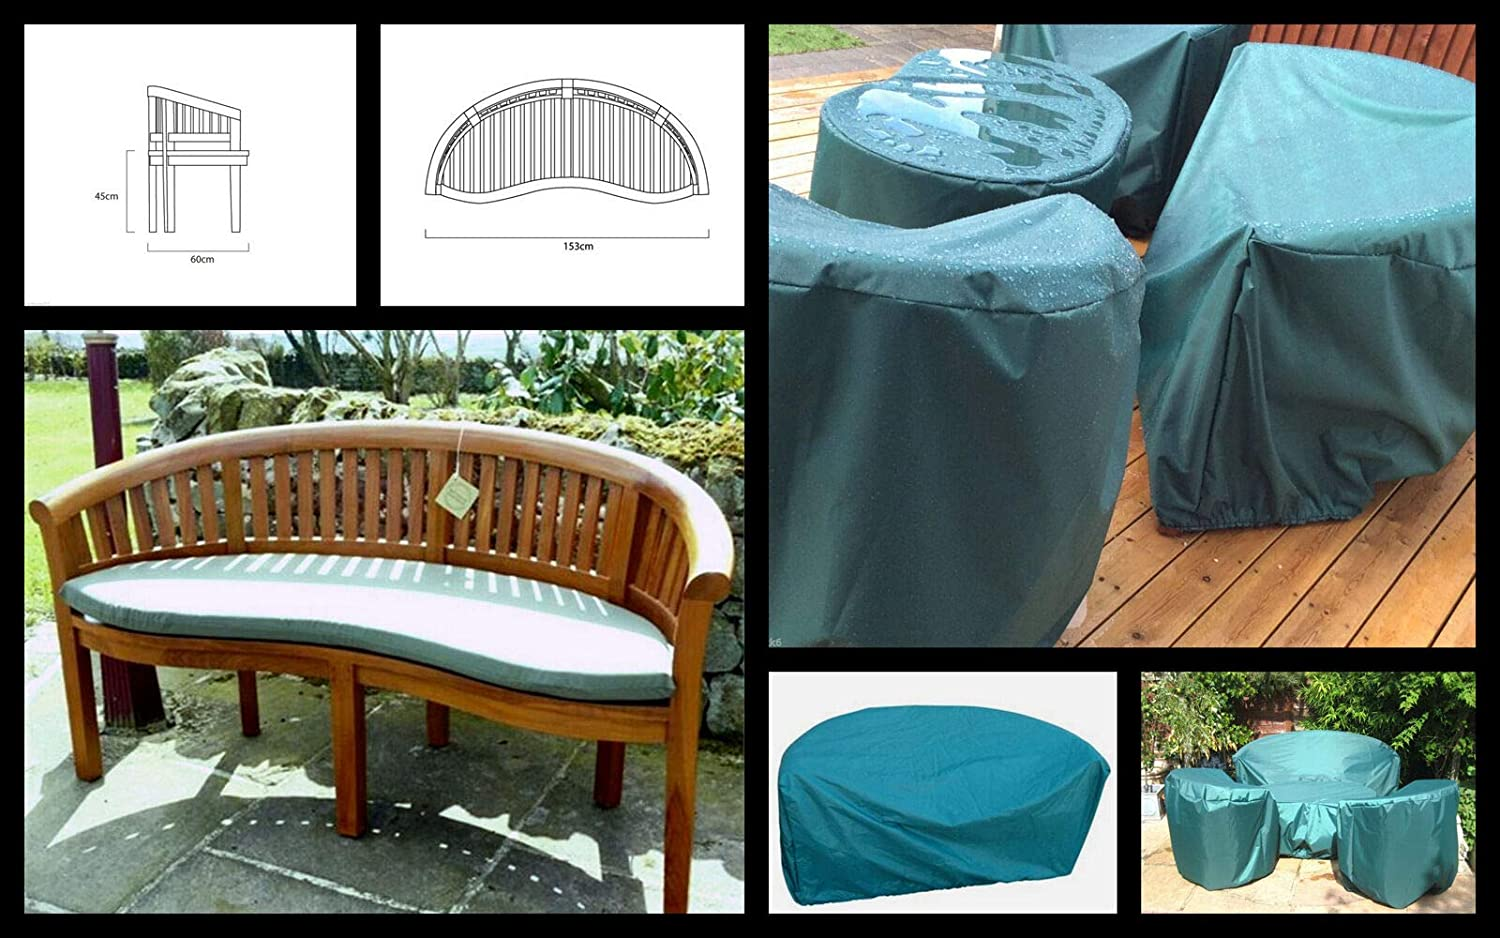 Garden furniture Moon Zippy Waterproof Fabric BANANA BENCH COVER also fits Peanut And shaped benches DARK GREEN